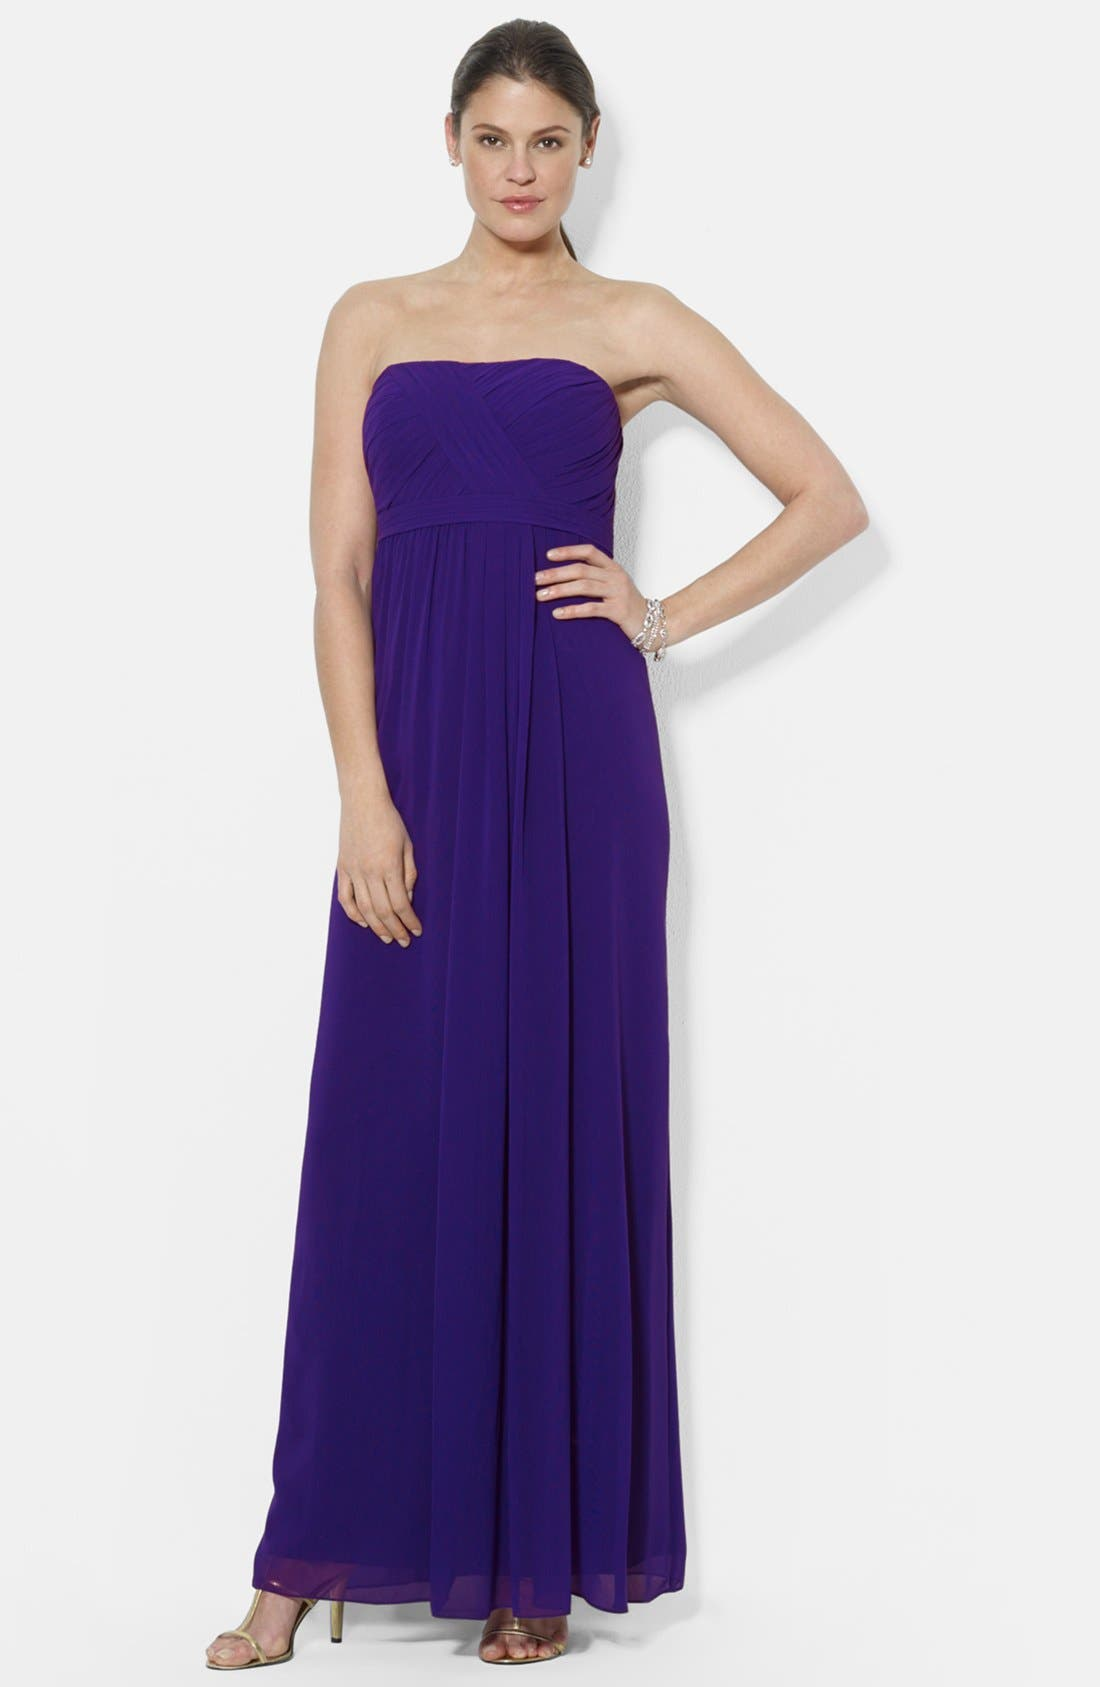 Main Image - Lauren Ralph Lauren Strapless Gathered Empire Gown